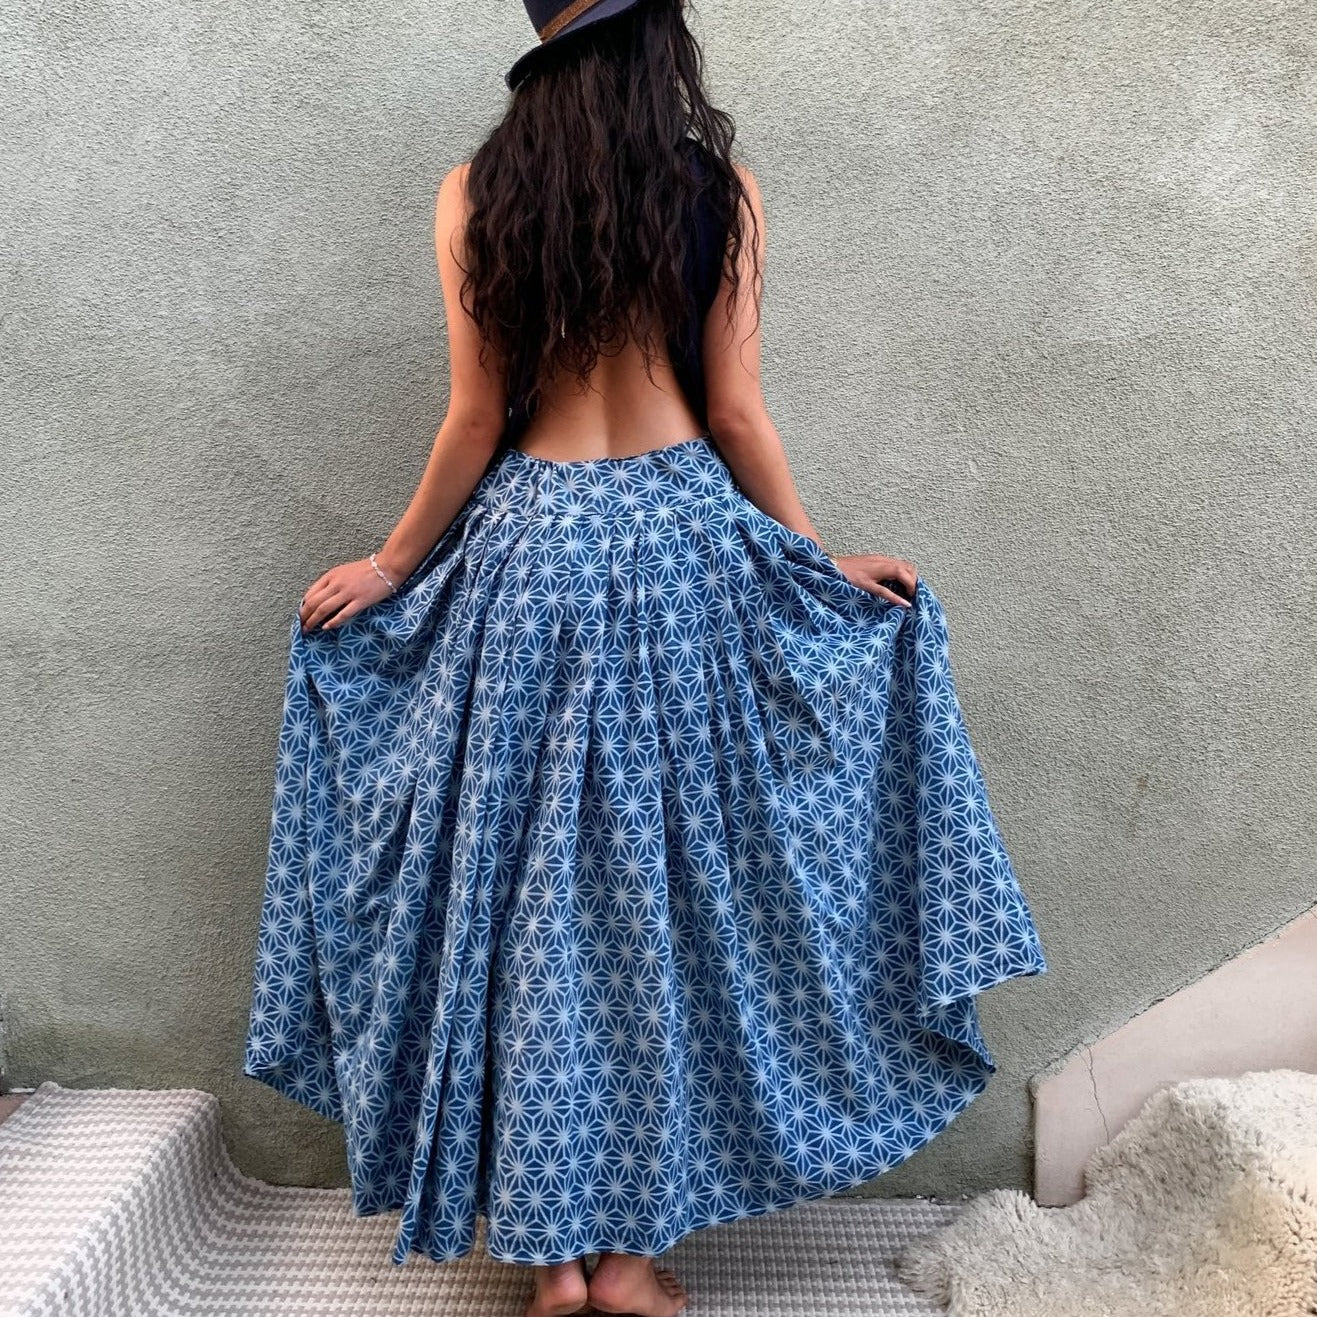 glorka skirt